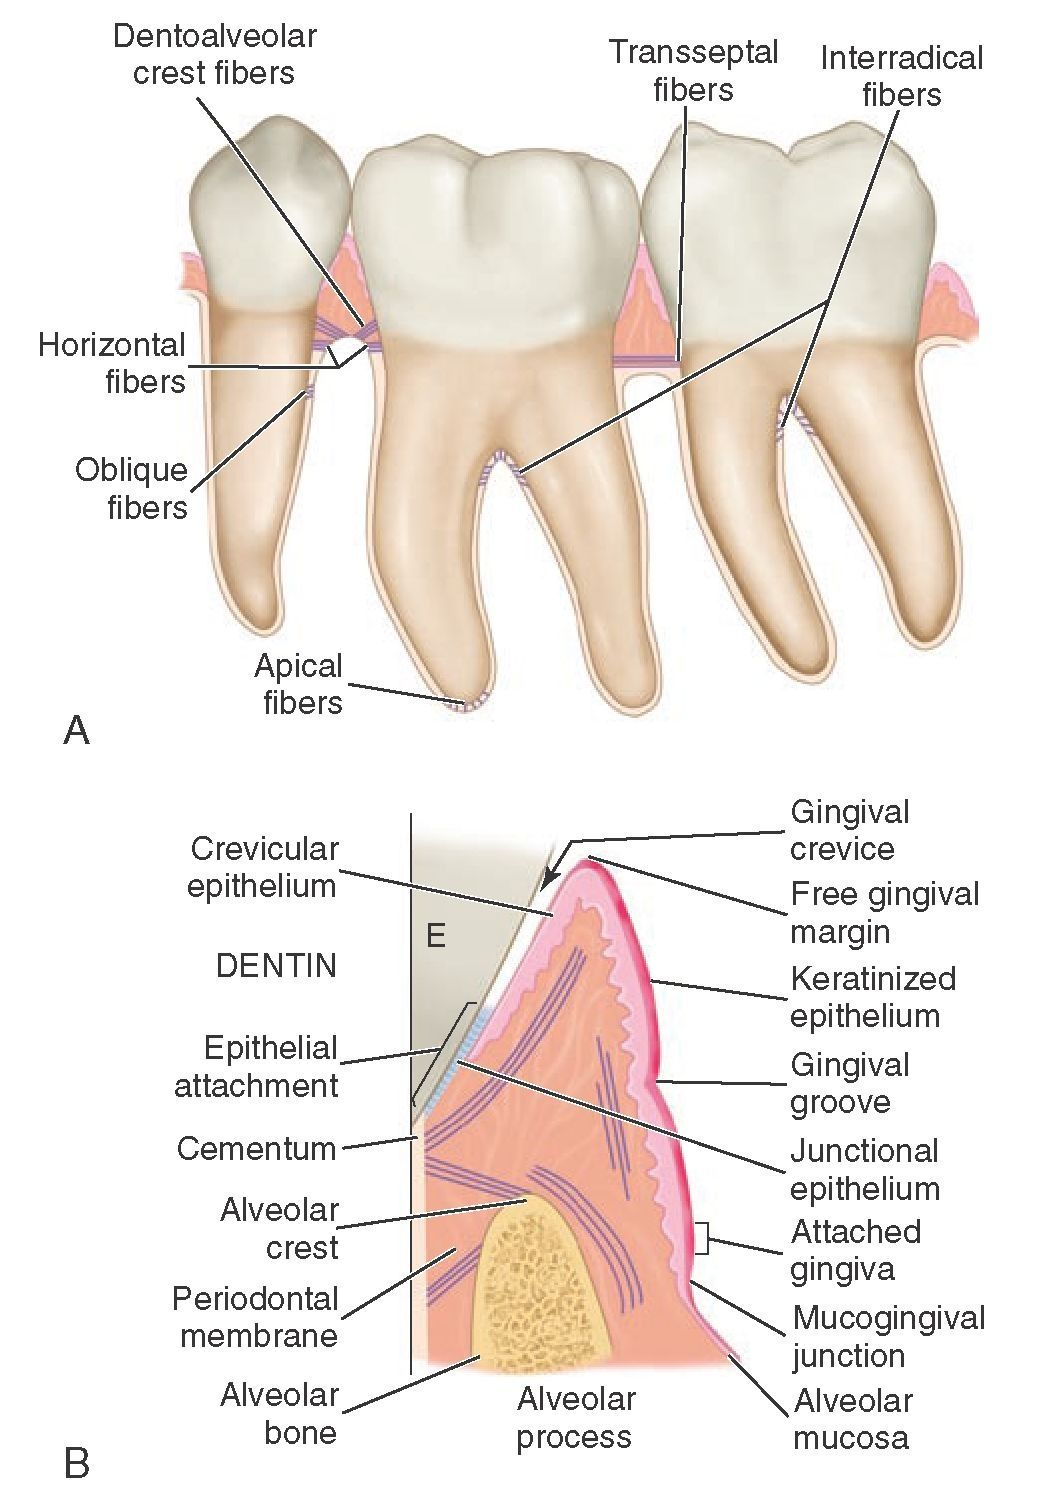 Dental Anatomy | Dental Anatomy | Pinterest | Zahn, Zahnmedizin und ...